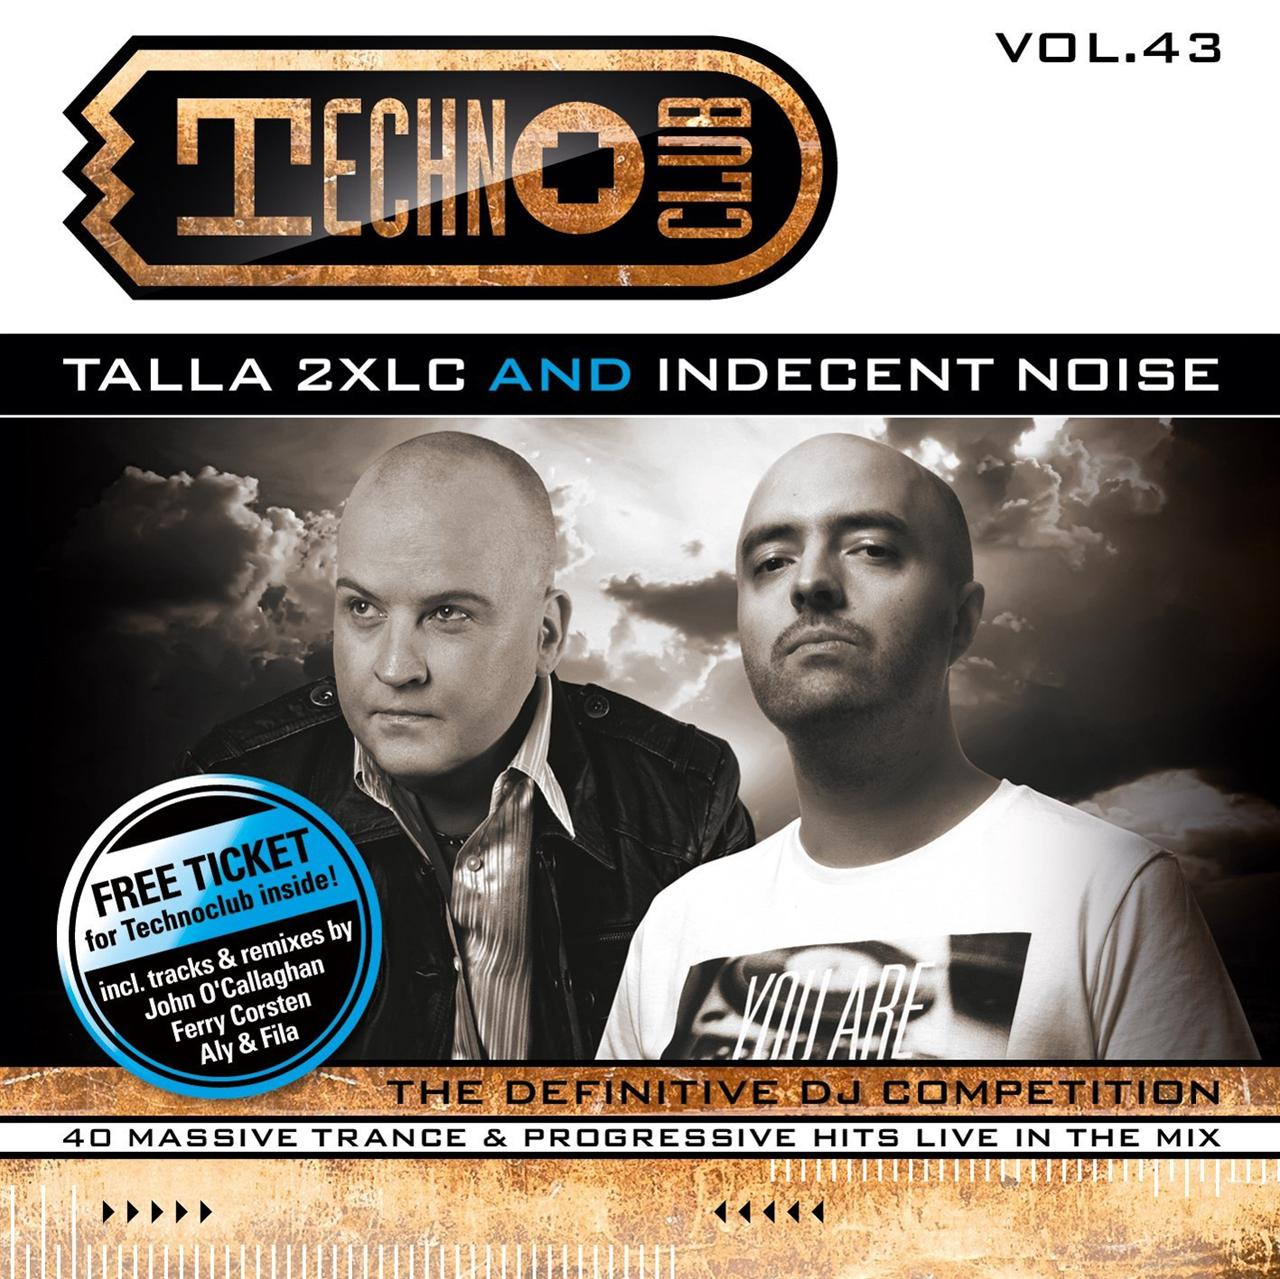 Techno Club Vol 43 (2013) [MULTI]